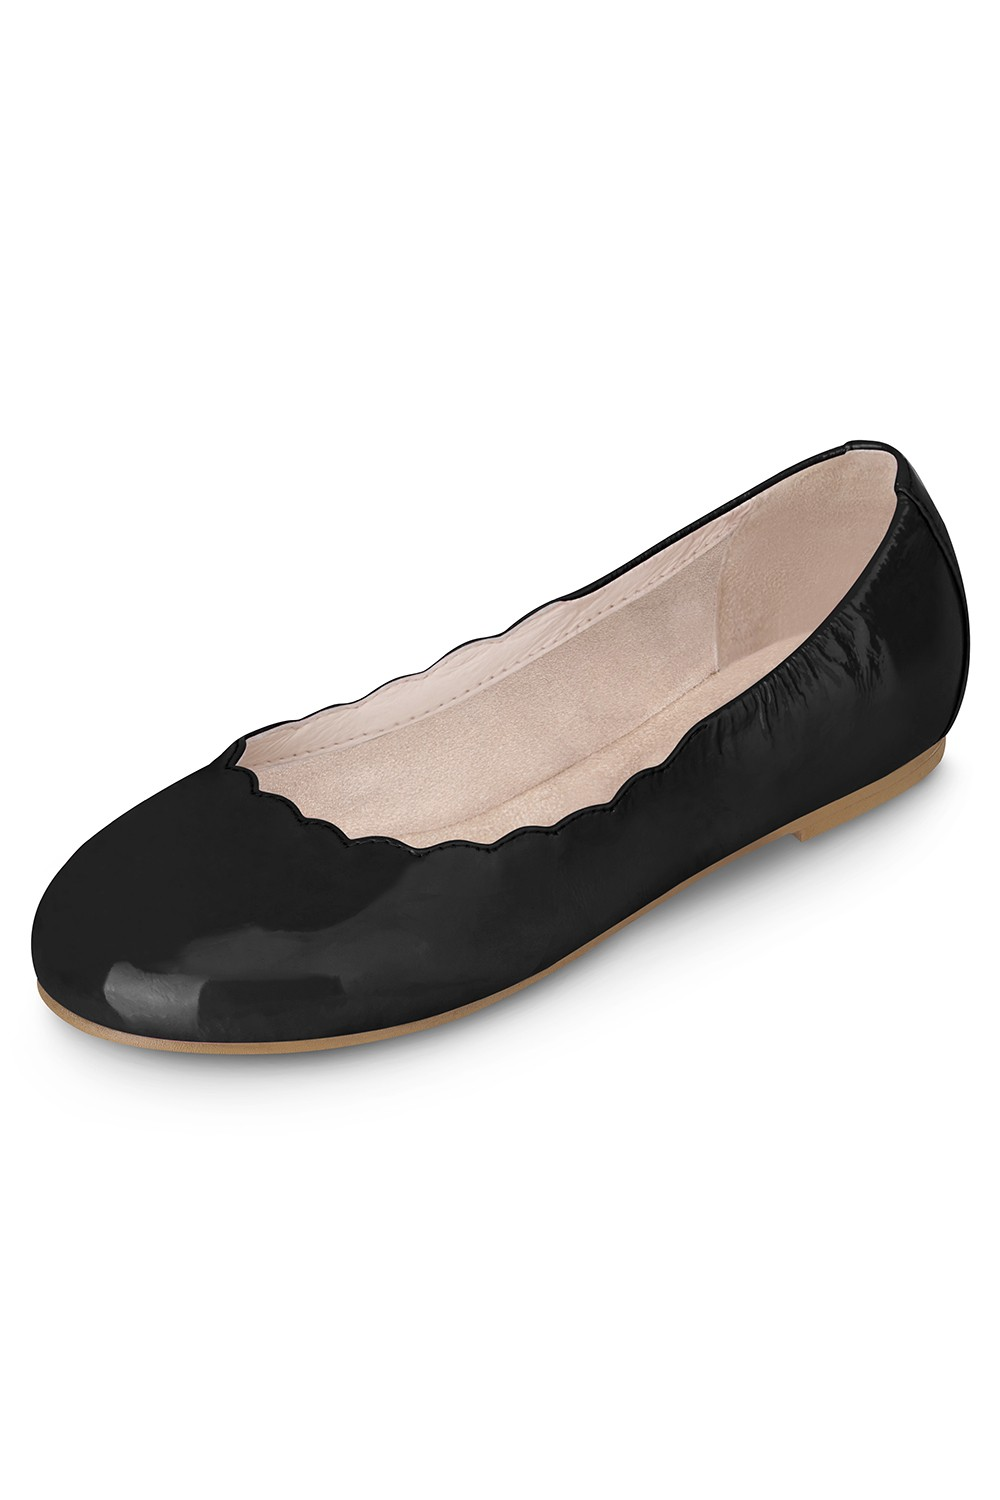 Scalloped Ballerina - Girls Girls Fashion Shoes